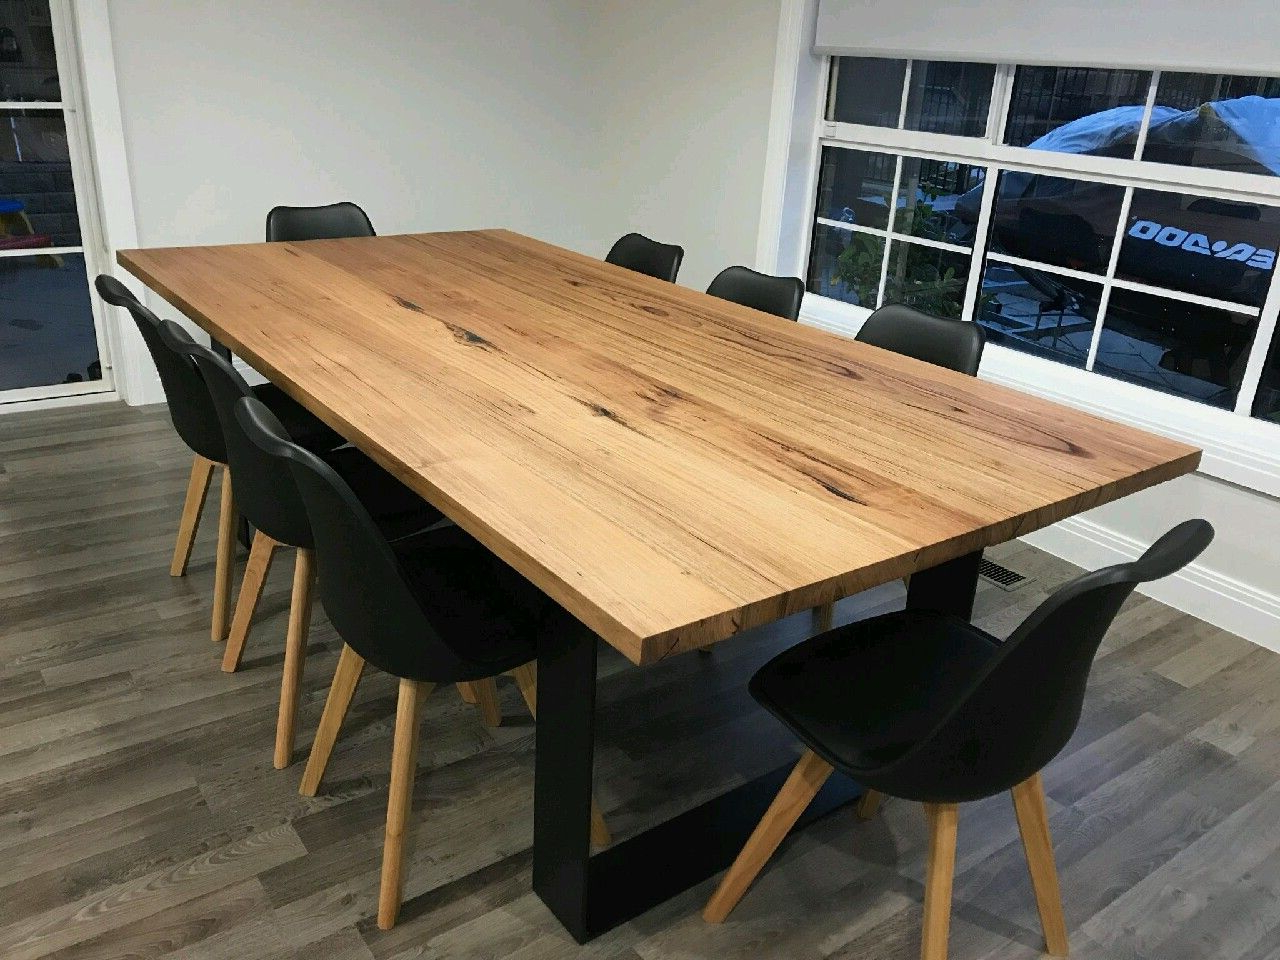 Most Recent Recycled Messmate Dining Table With Black Flat Bar Metal With Dining Tables With Black U Legs (View 4 of 25)